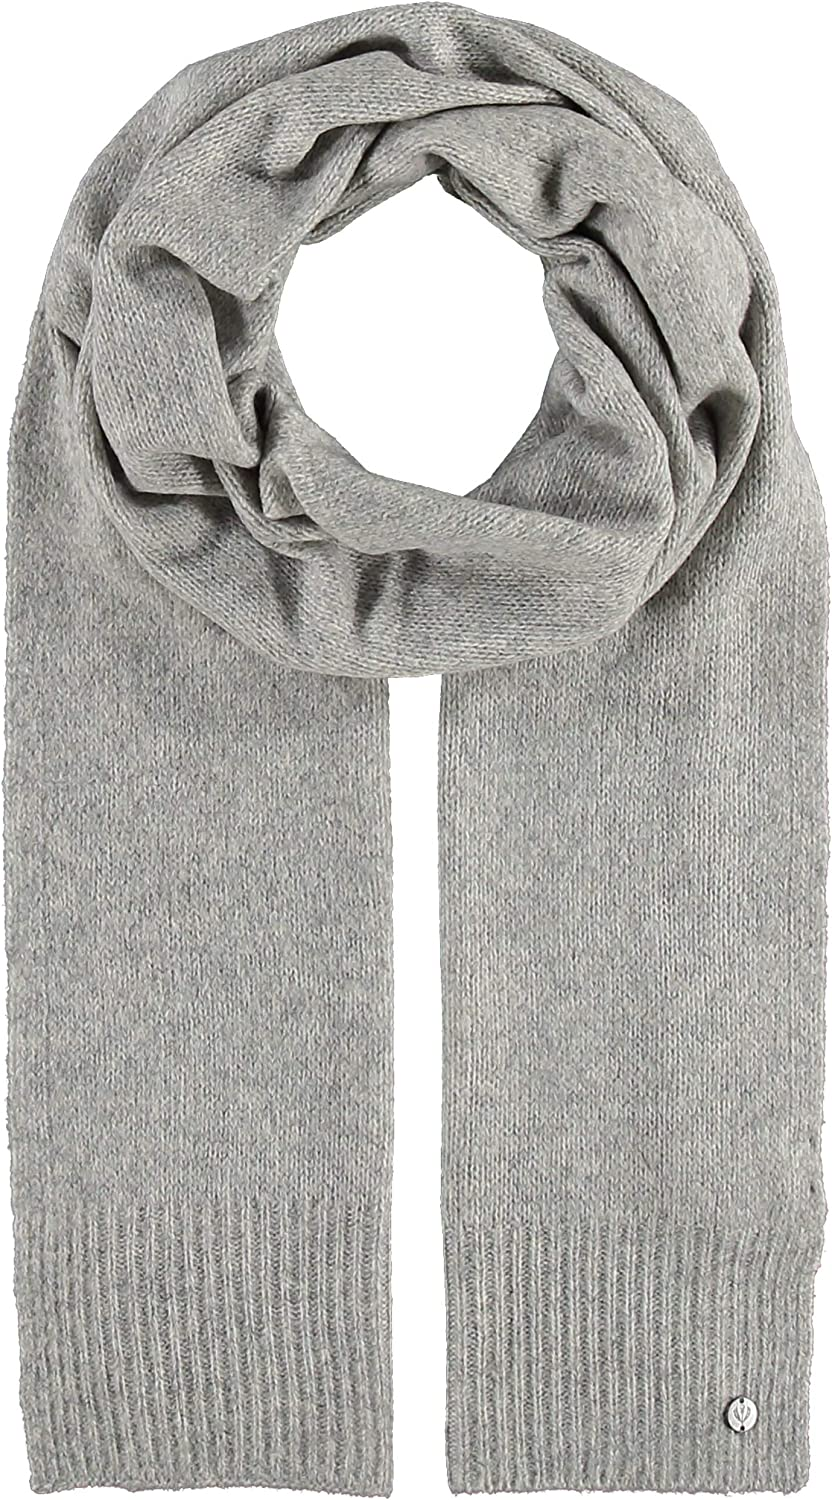 Max 74% OFF FRAAS Pastel Mélange Knit Scarf Fresno Mall